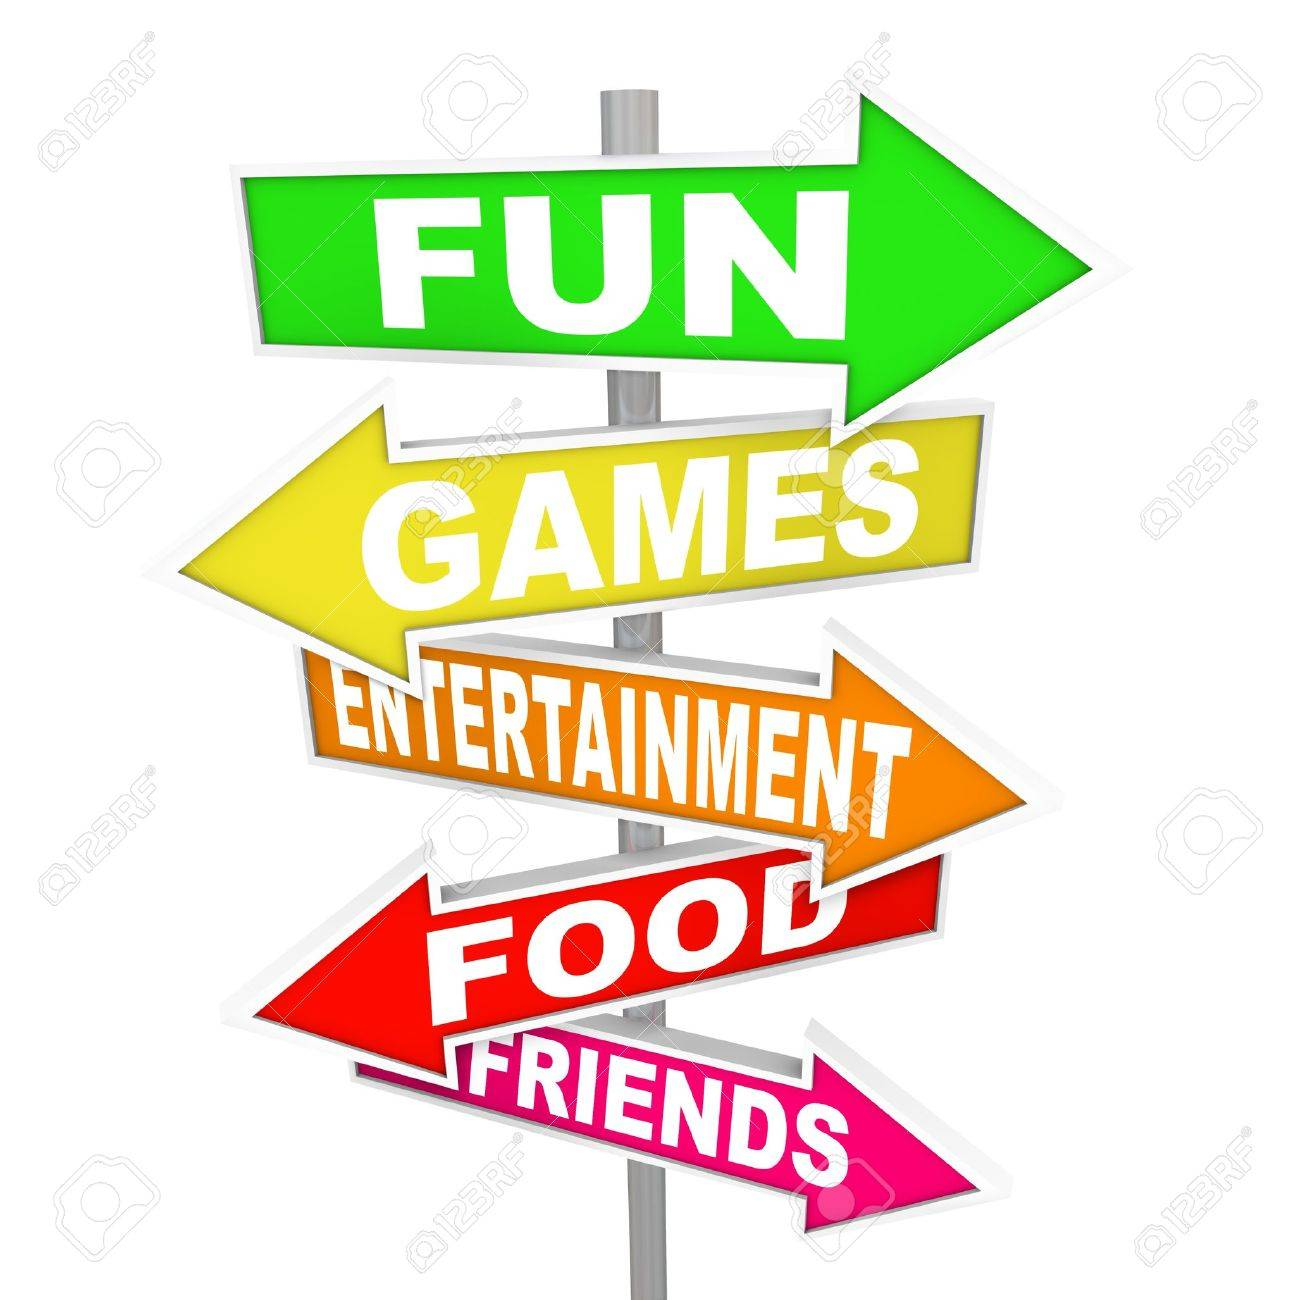 and fun games